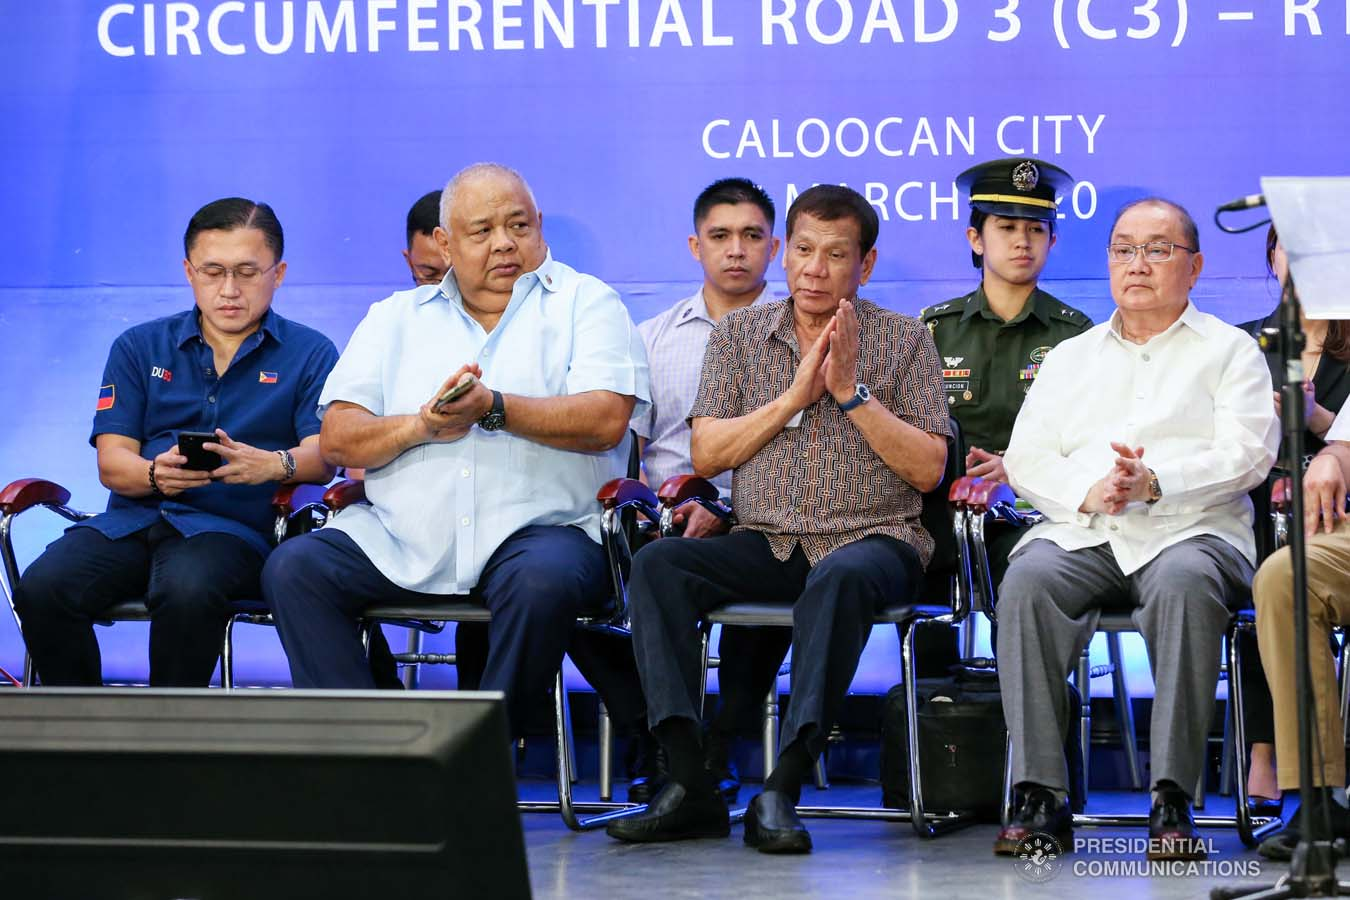 President Rodrigo Roa Duterte applauds after leading the inspection of the North Luzon Expressway (NLEX) Harbor Link Circumferential Road 3 (C3)-R10 Section in Caloocan City on March 5, 2020. RICHARD MADELO/PRESIDENTIAL PHOTO